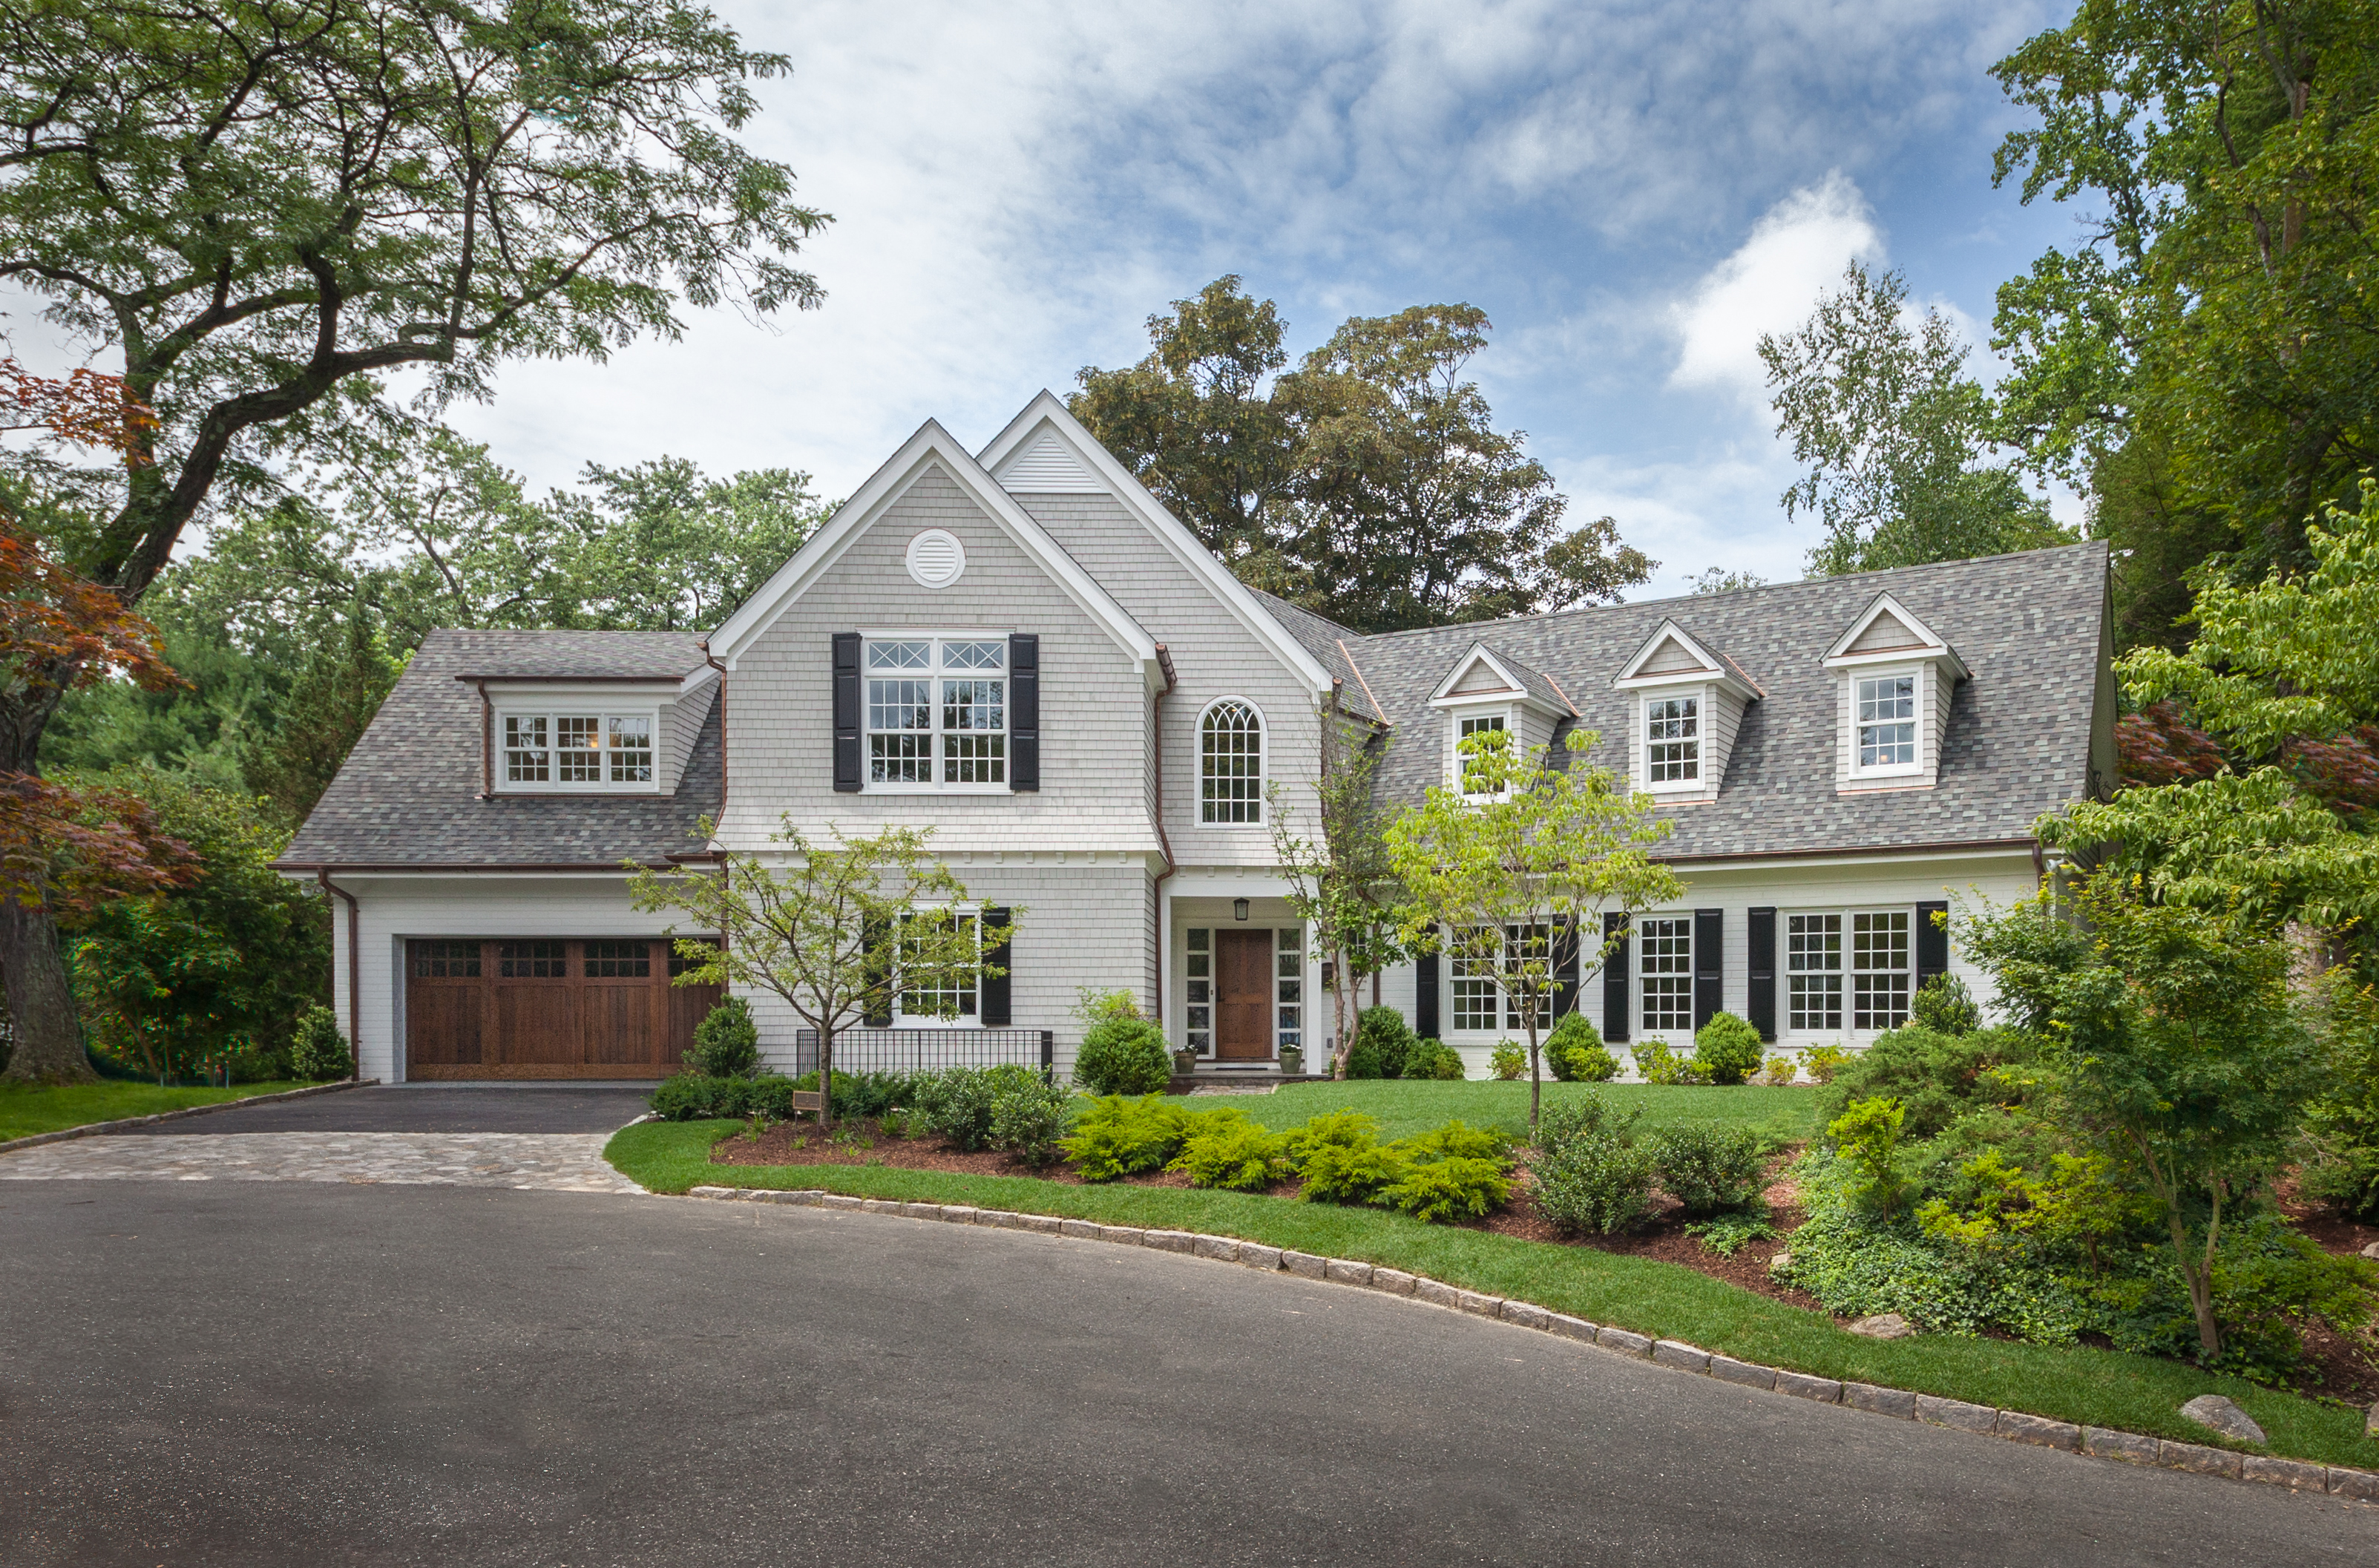 Property For Sale at Spectacular New Construction